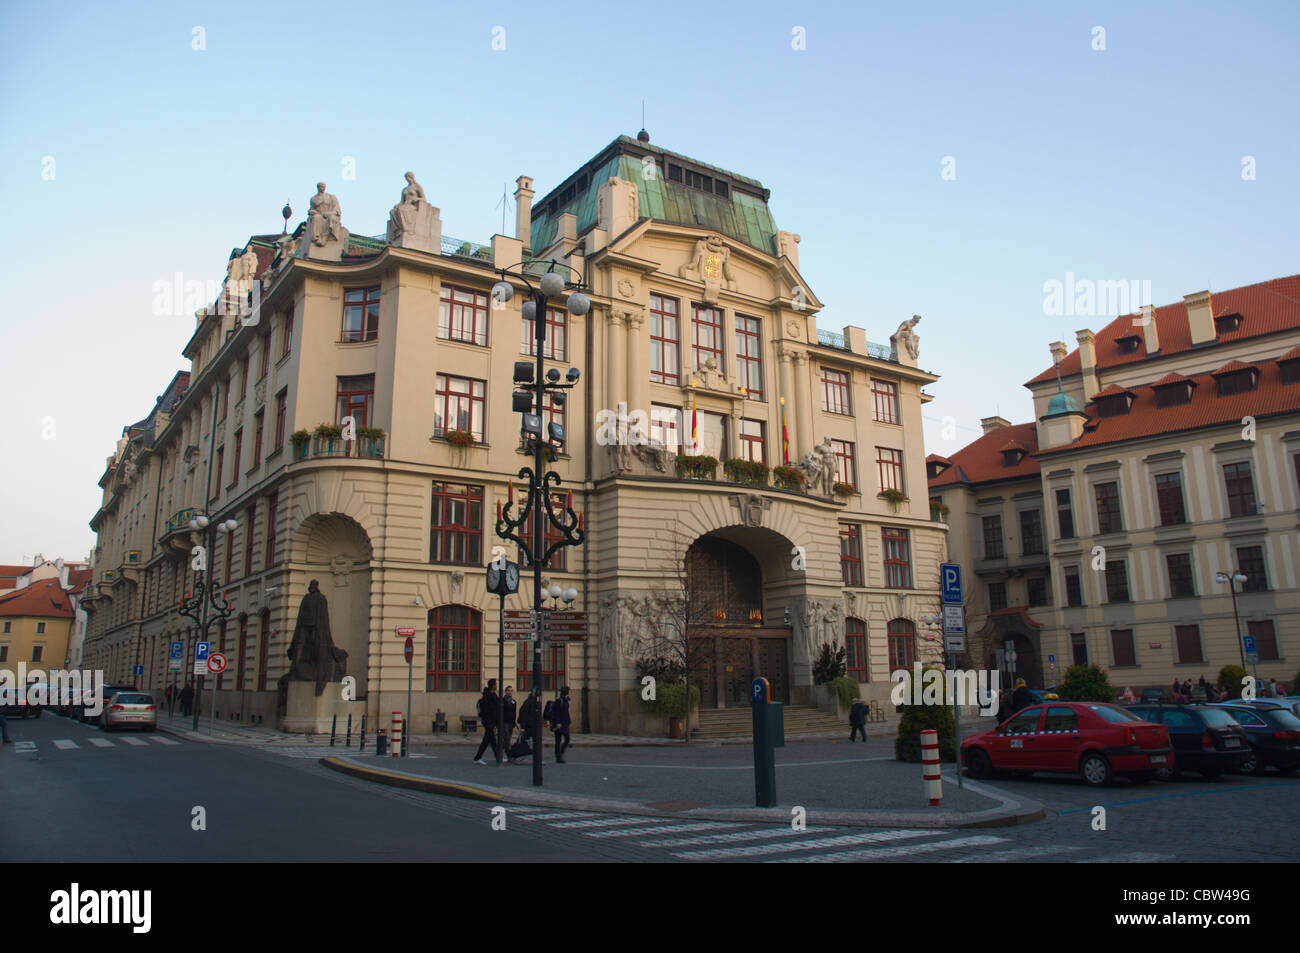 Marianske Namesti square with Nova Radnice the new town hall in old town Prague Czech Republic Europe - Stock Image